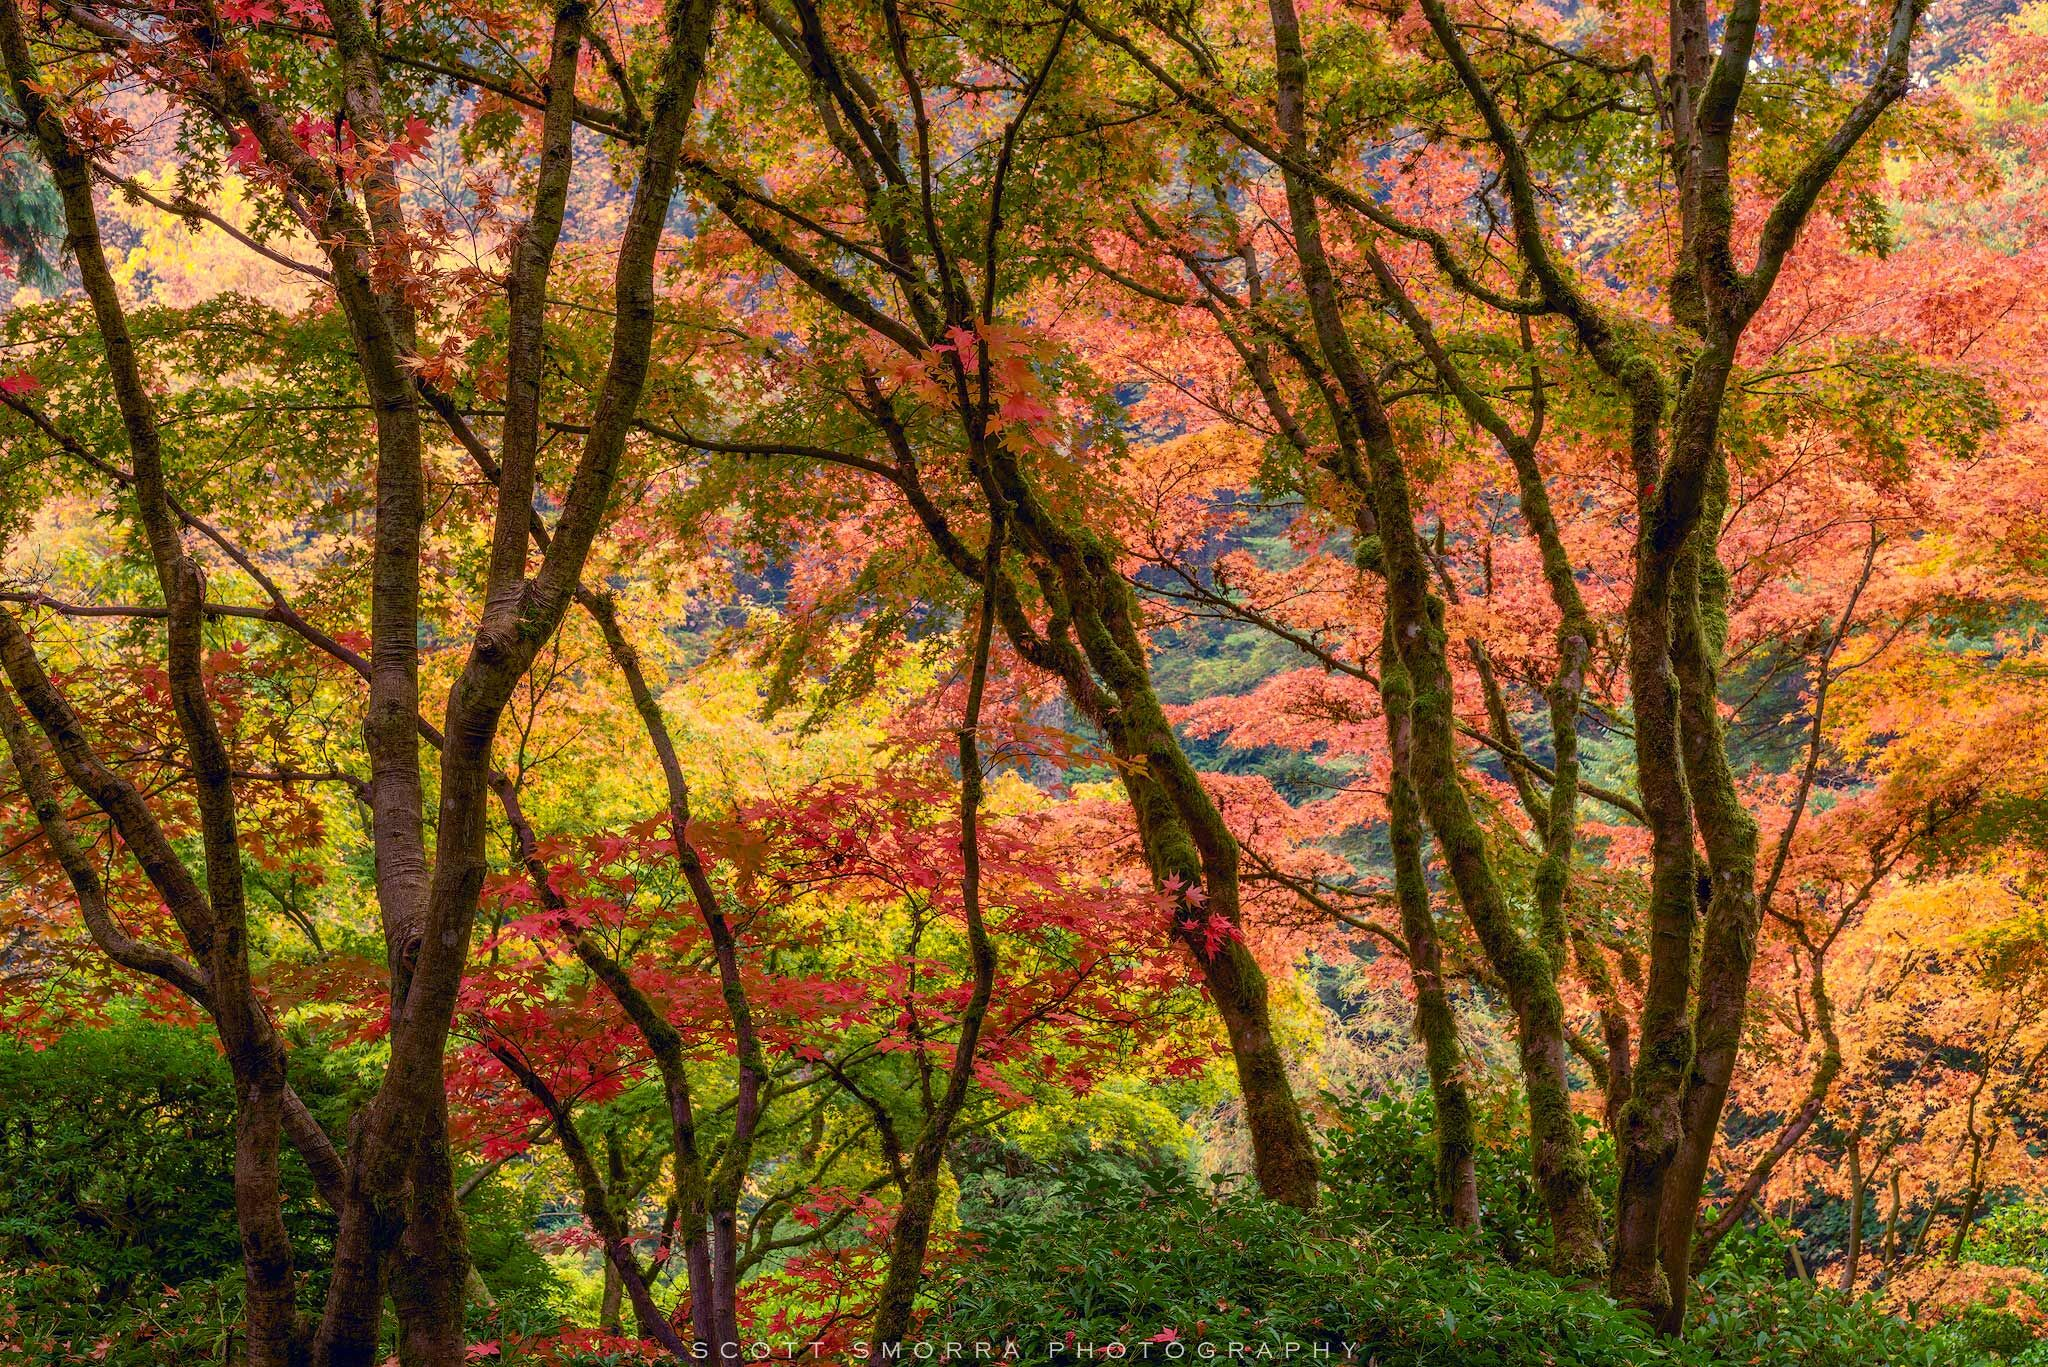 Fine Art Limited Edition of 100 - Beautiful Japanese Maples during the peak of fall color at the Portland Japanese Garden, Portland...